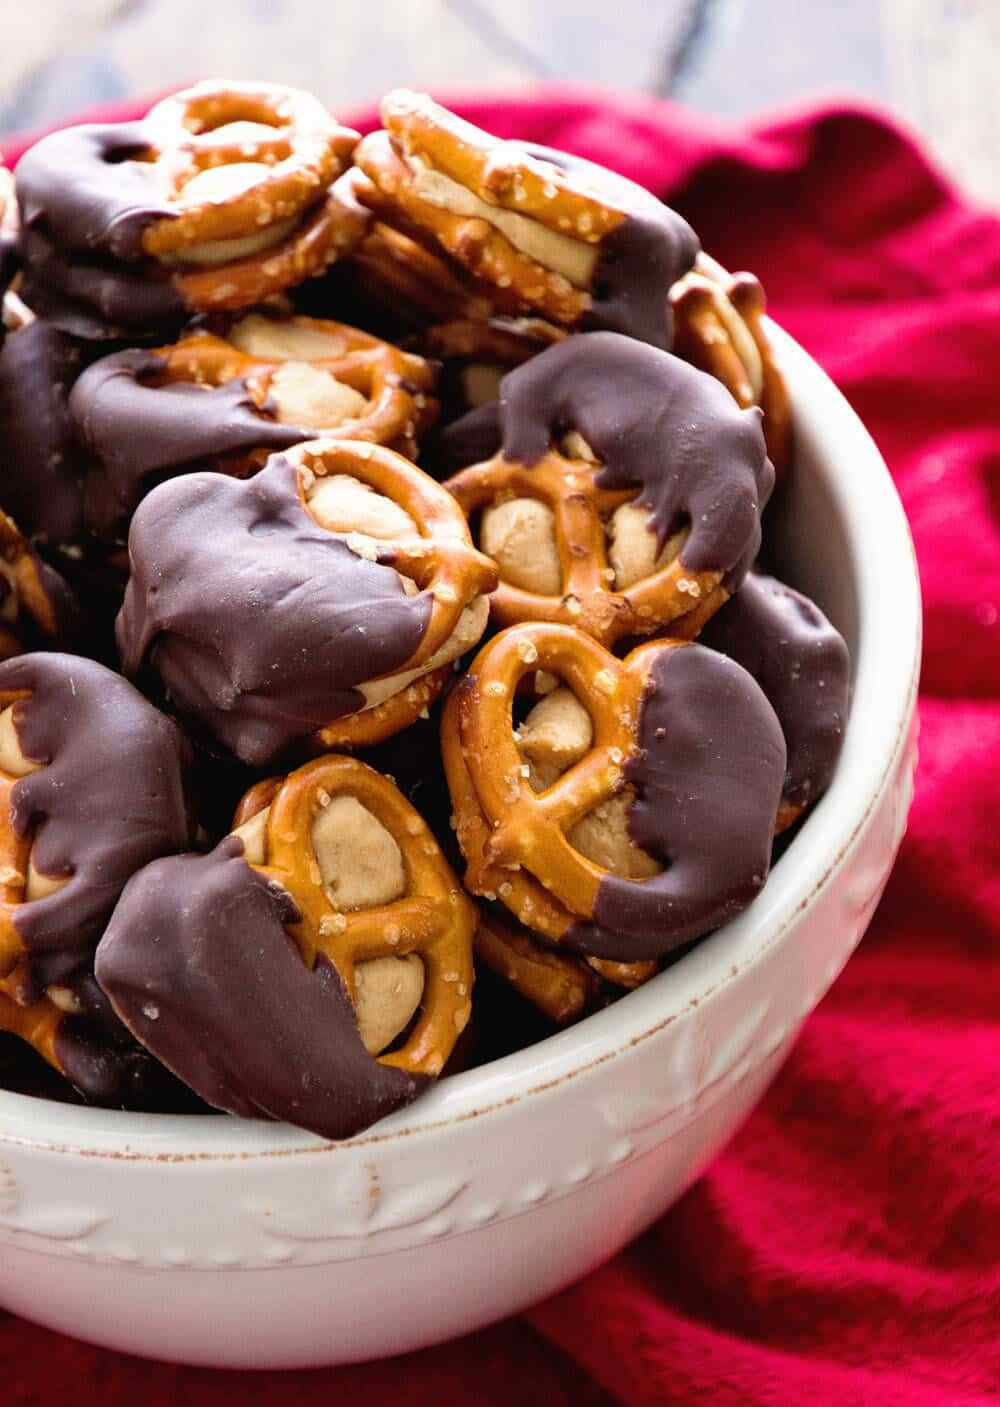 HOW TO MAKE CHOCOLATE DIPPED PEANUT BUTTER PRETZELS